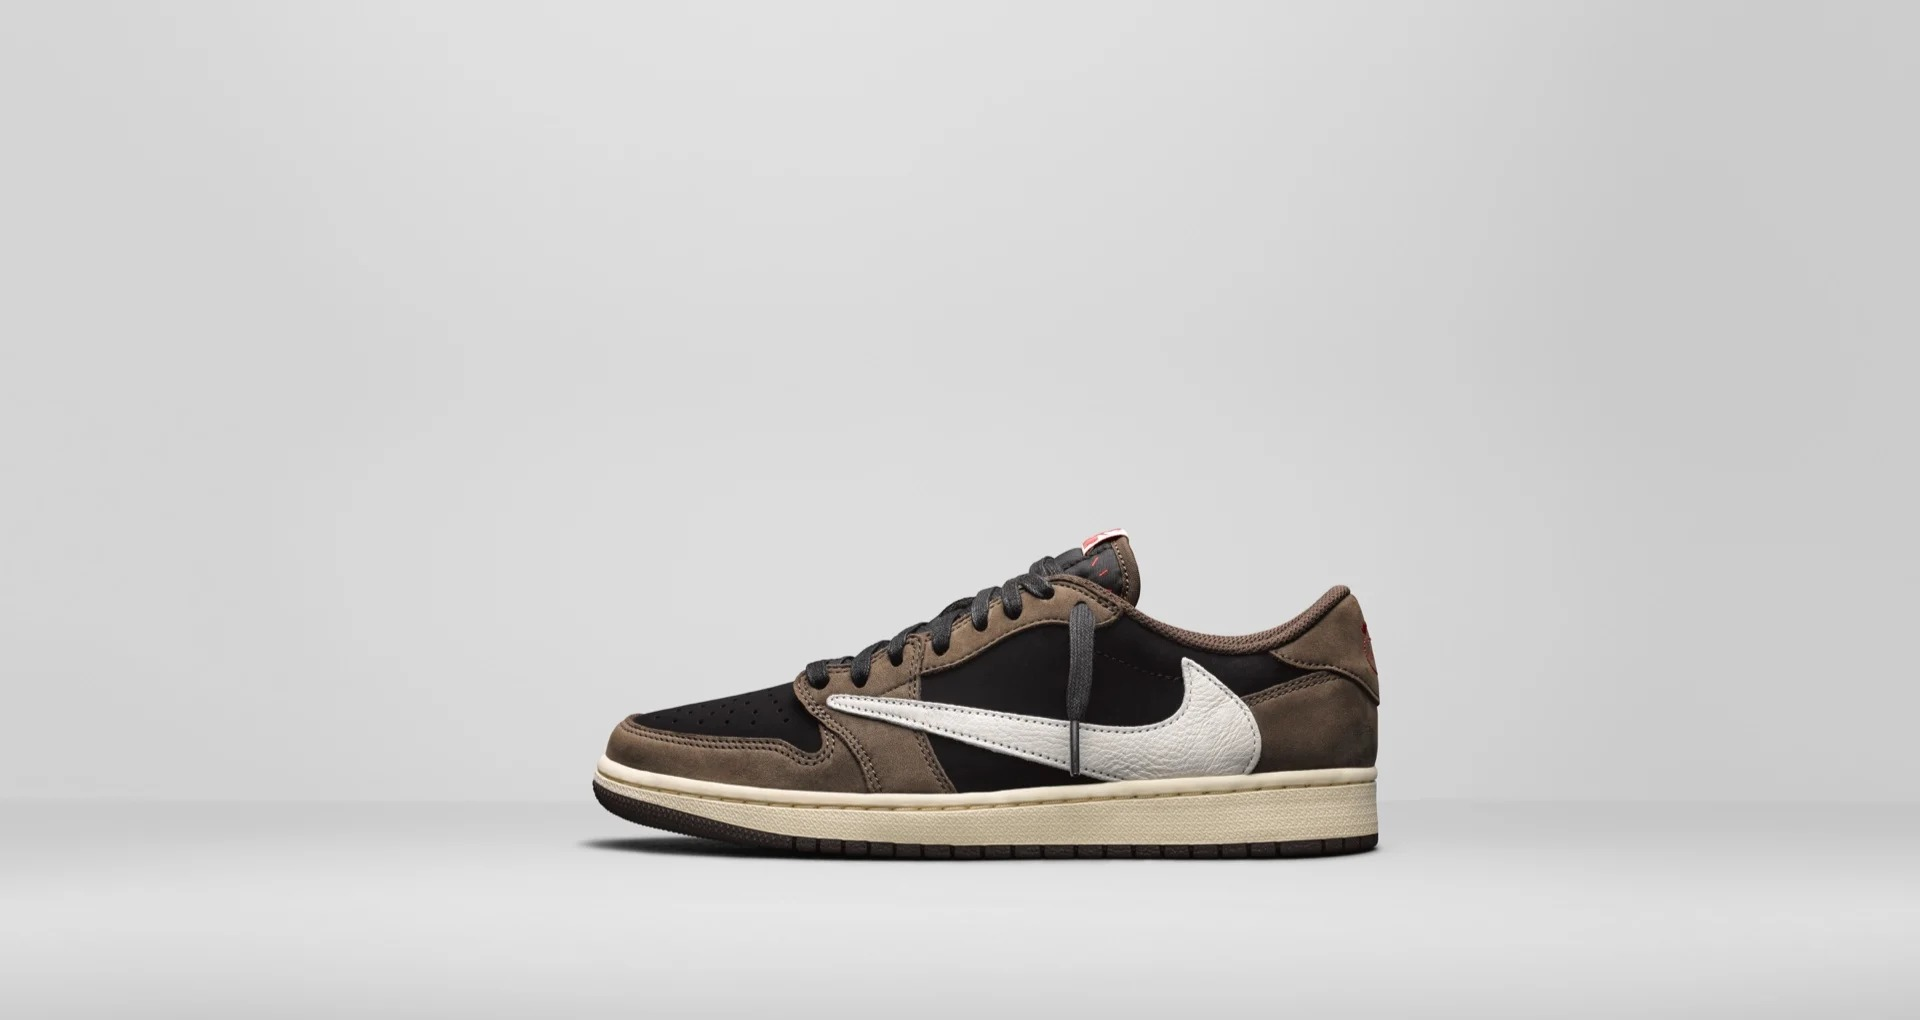 CQ4277 001 Travis Scott x Air Jordan 1 Low 1